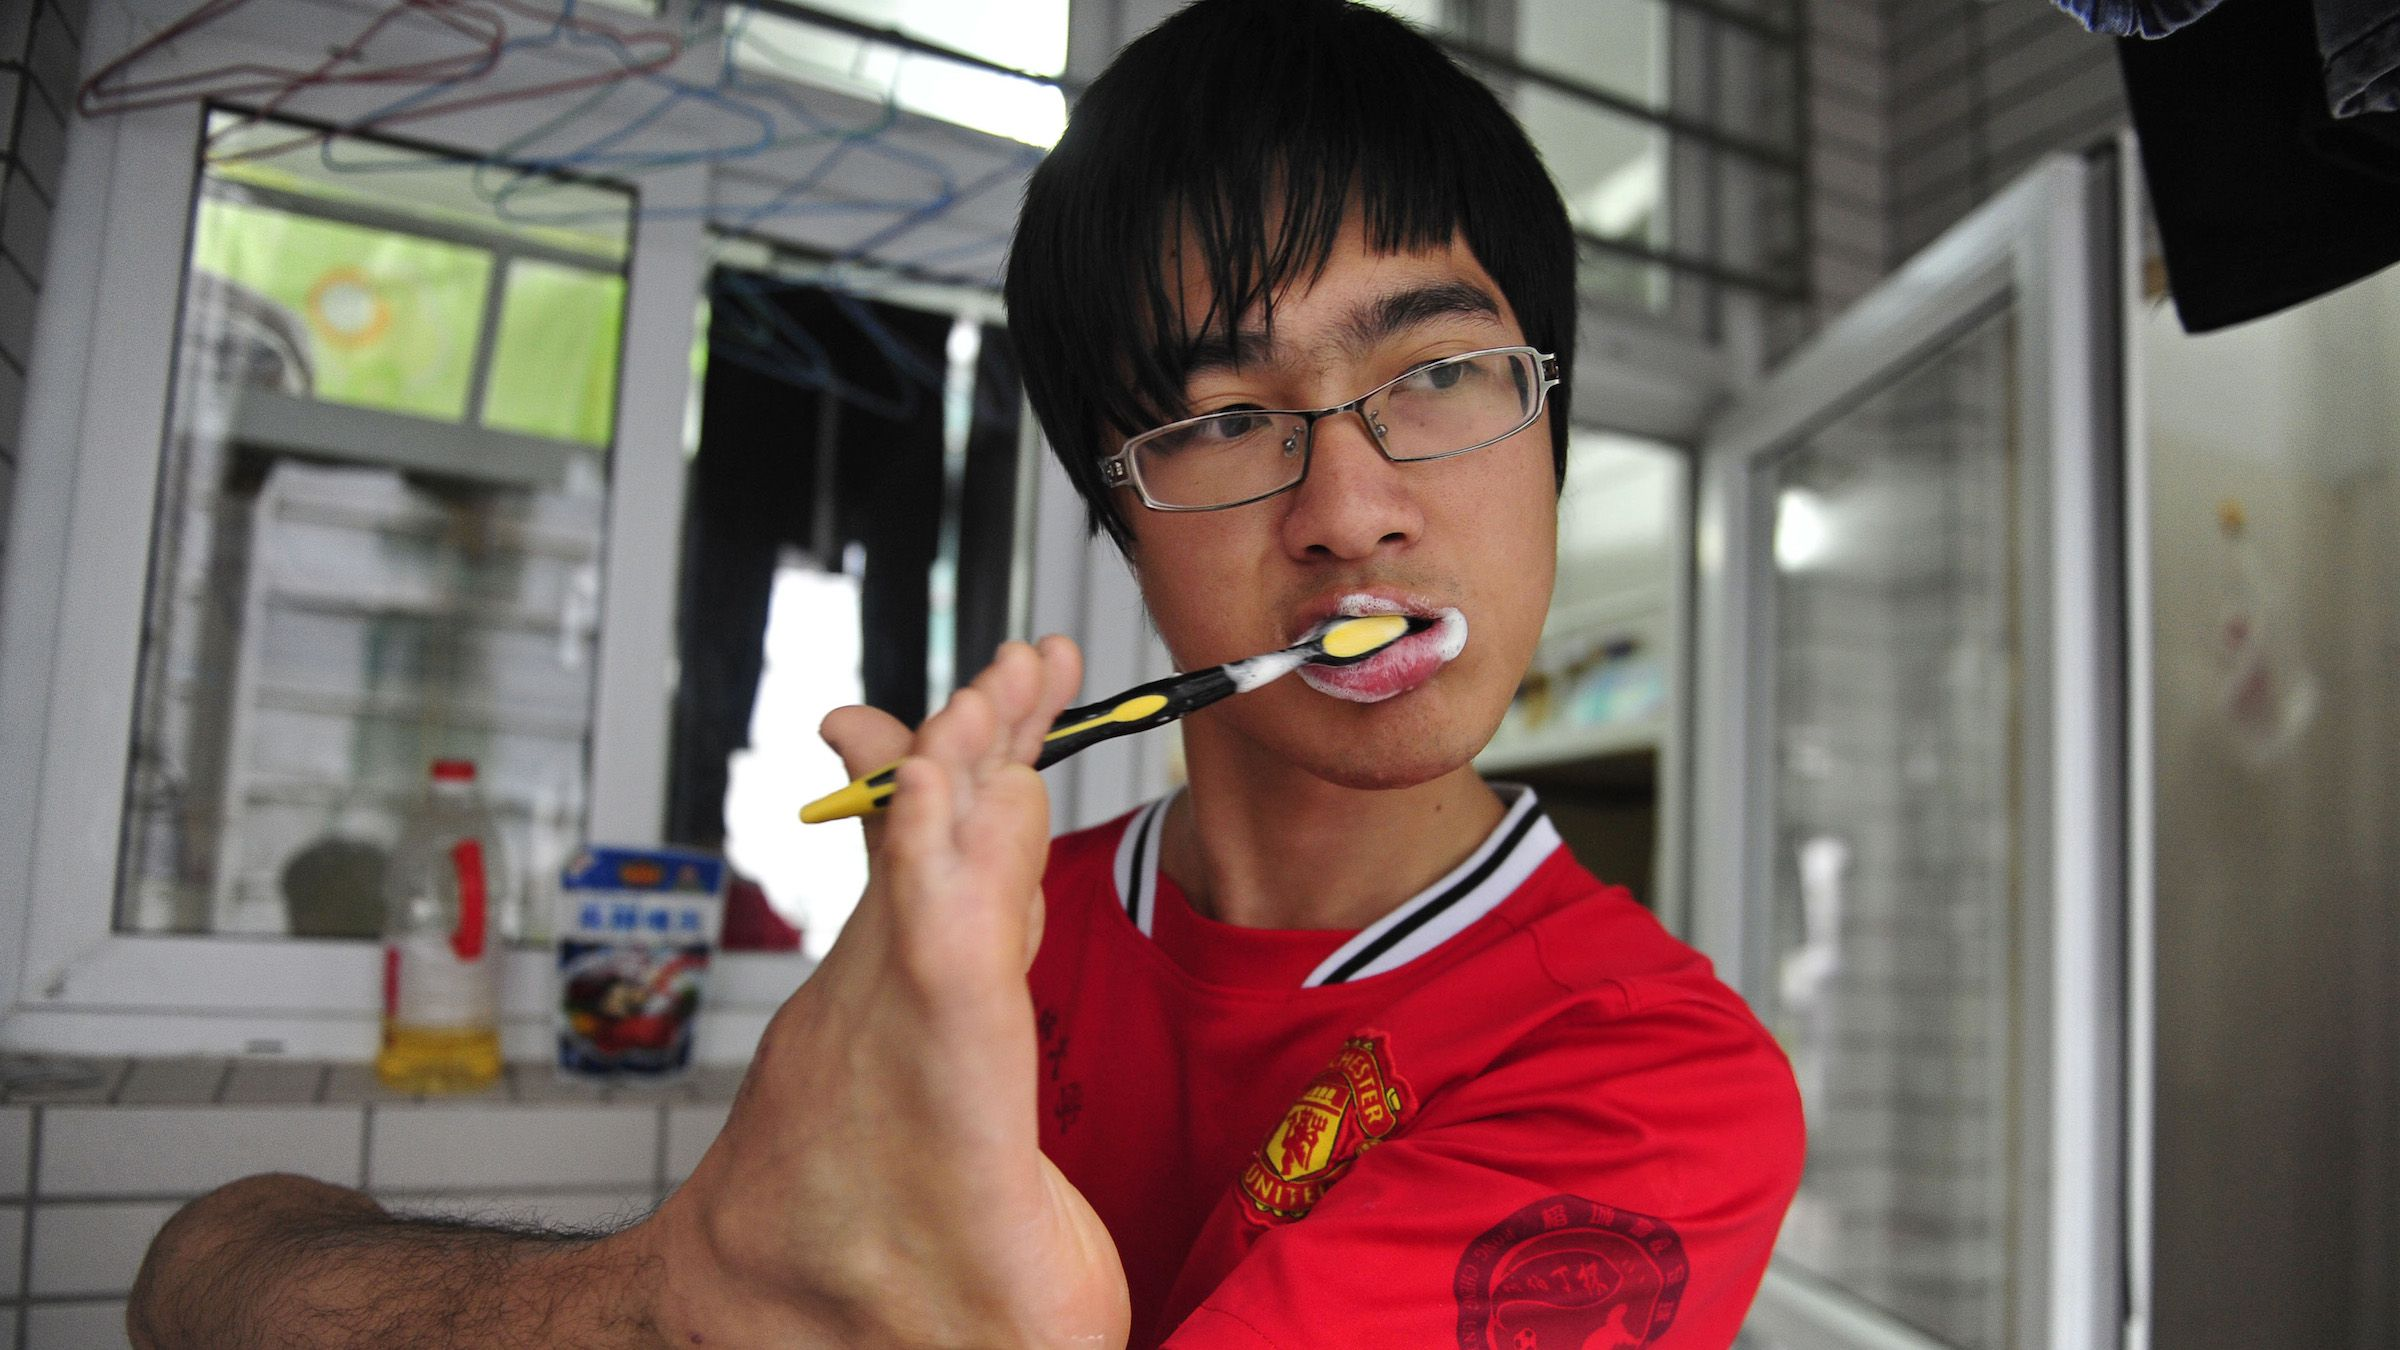 Fan Ling brushes his teeth with his foot